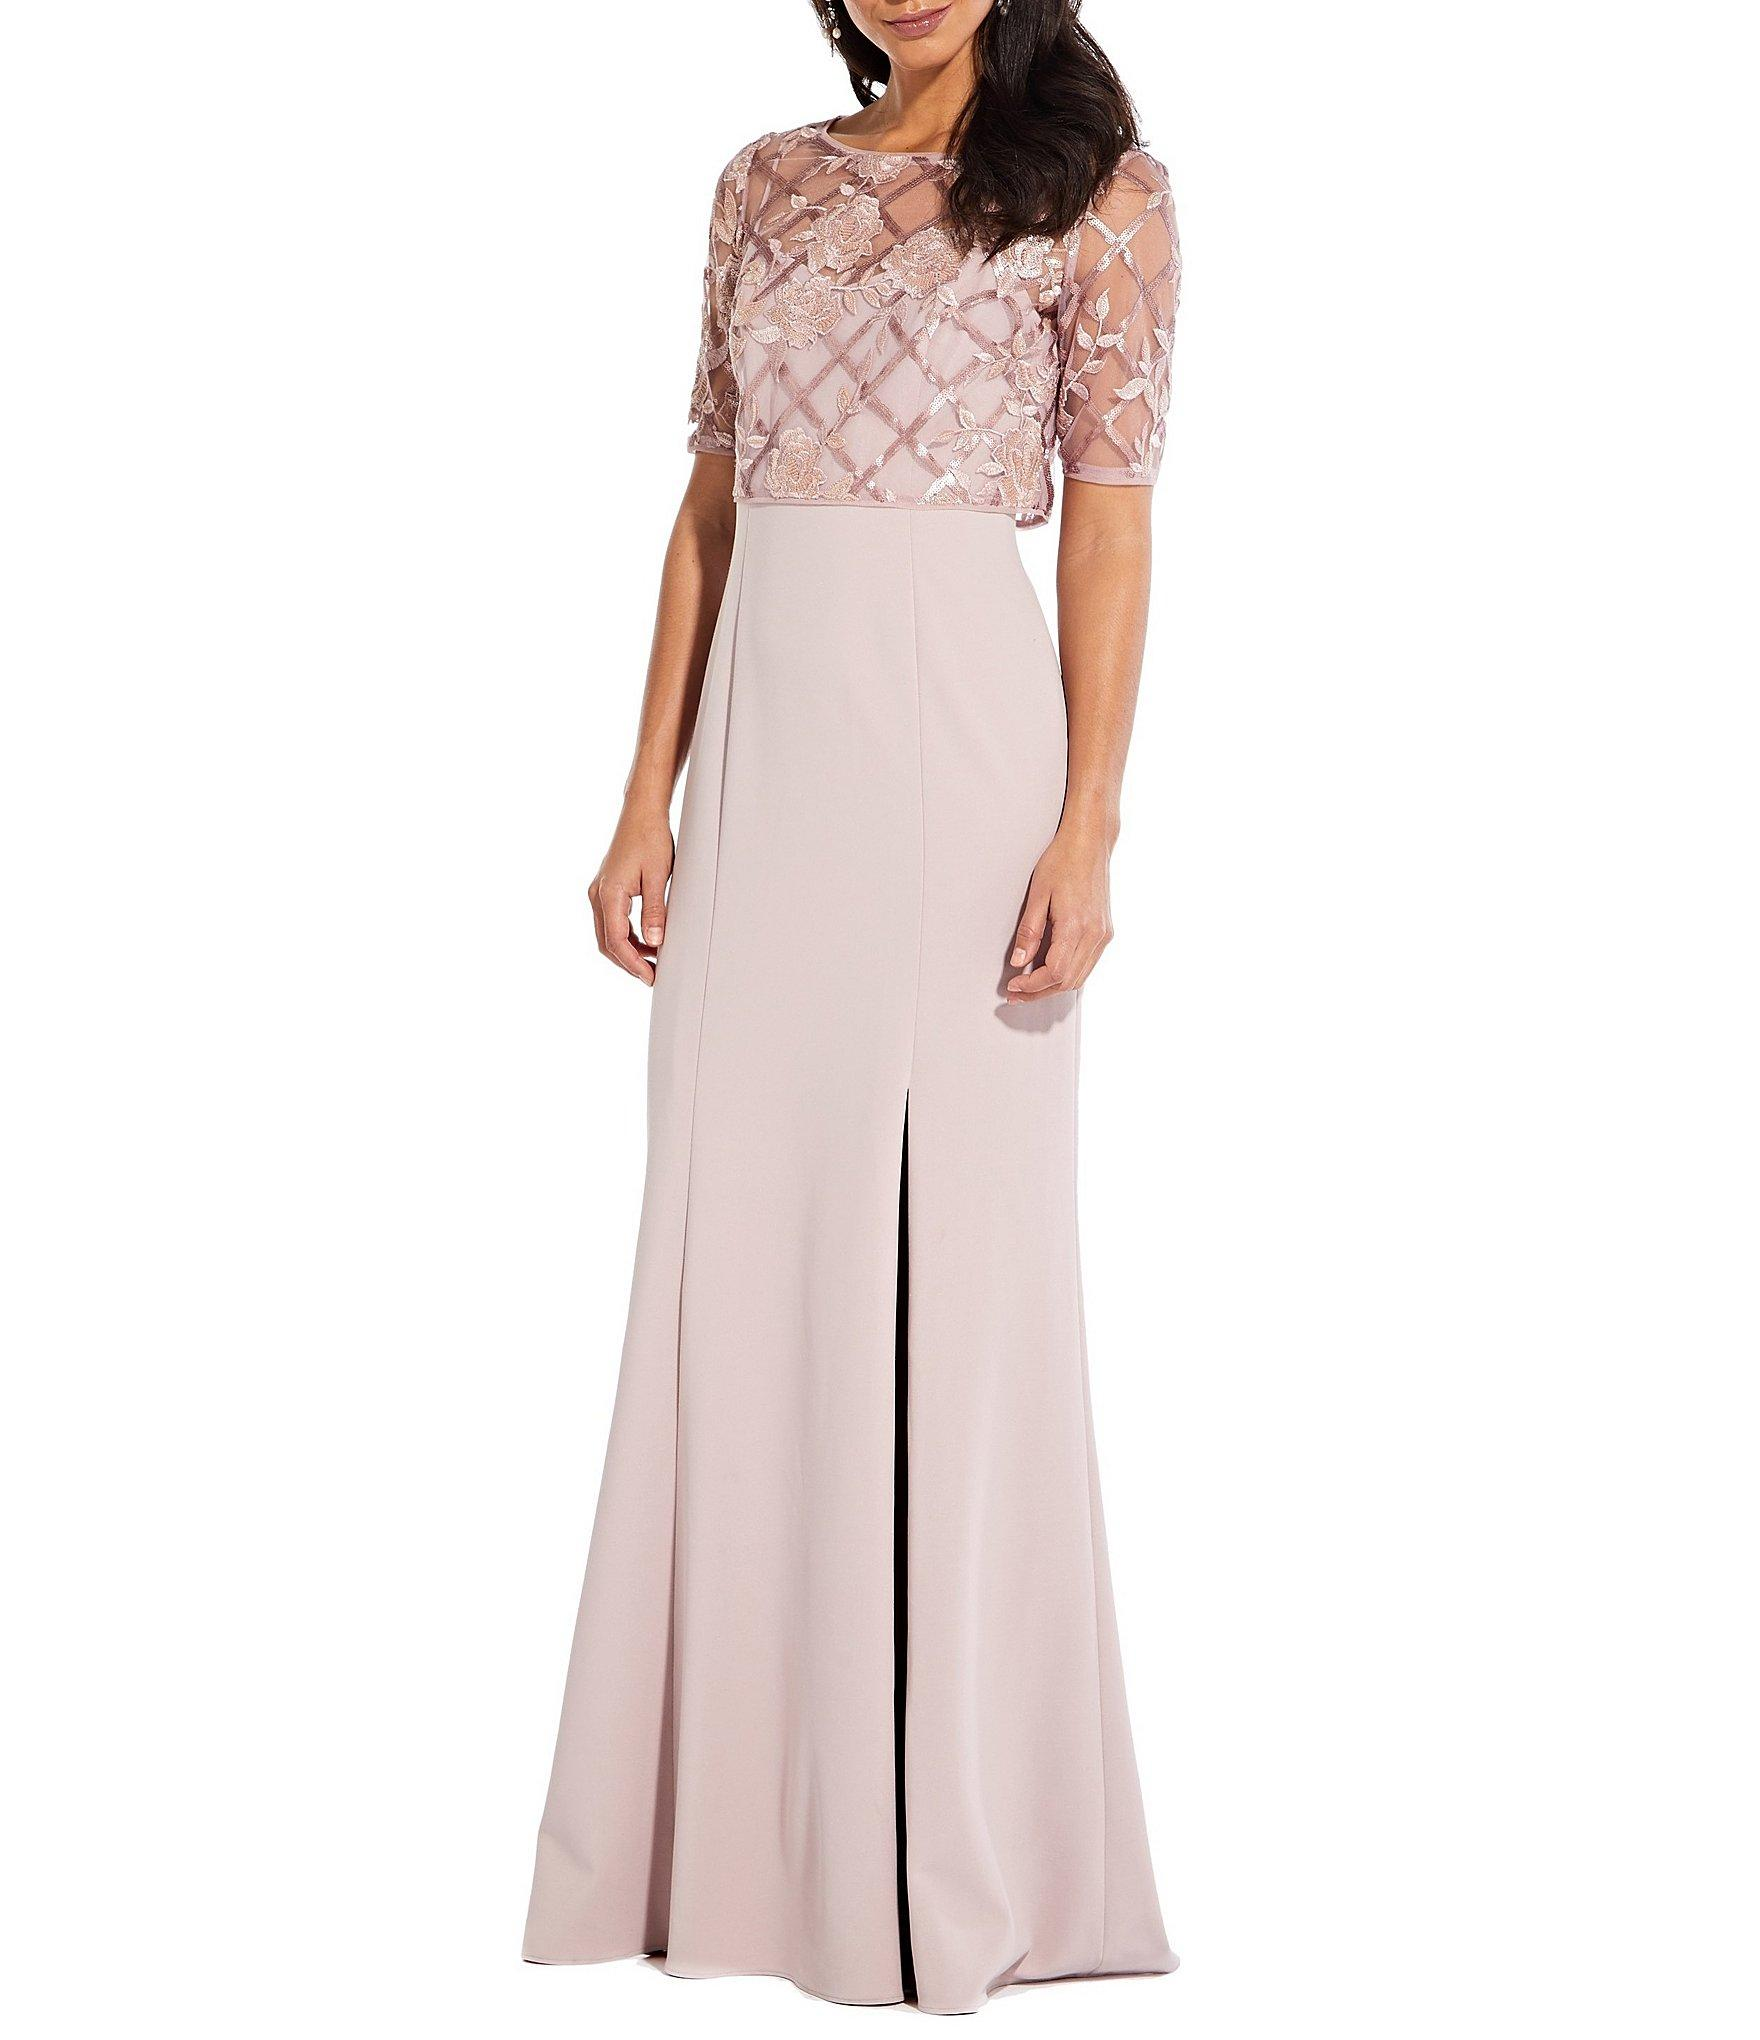 35646467765 Adrianna Papell - Pink Sequin Pop Over Crepe Gown - Lyst. View fullscreen